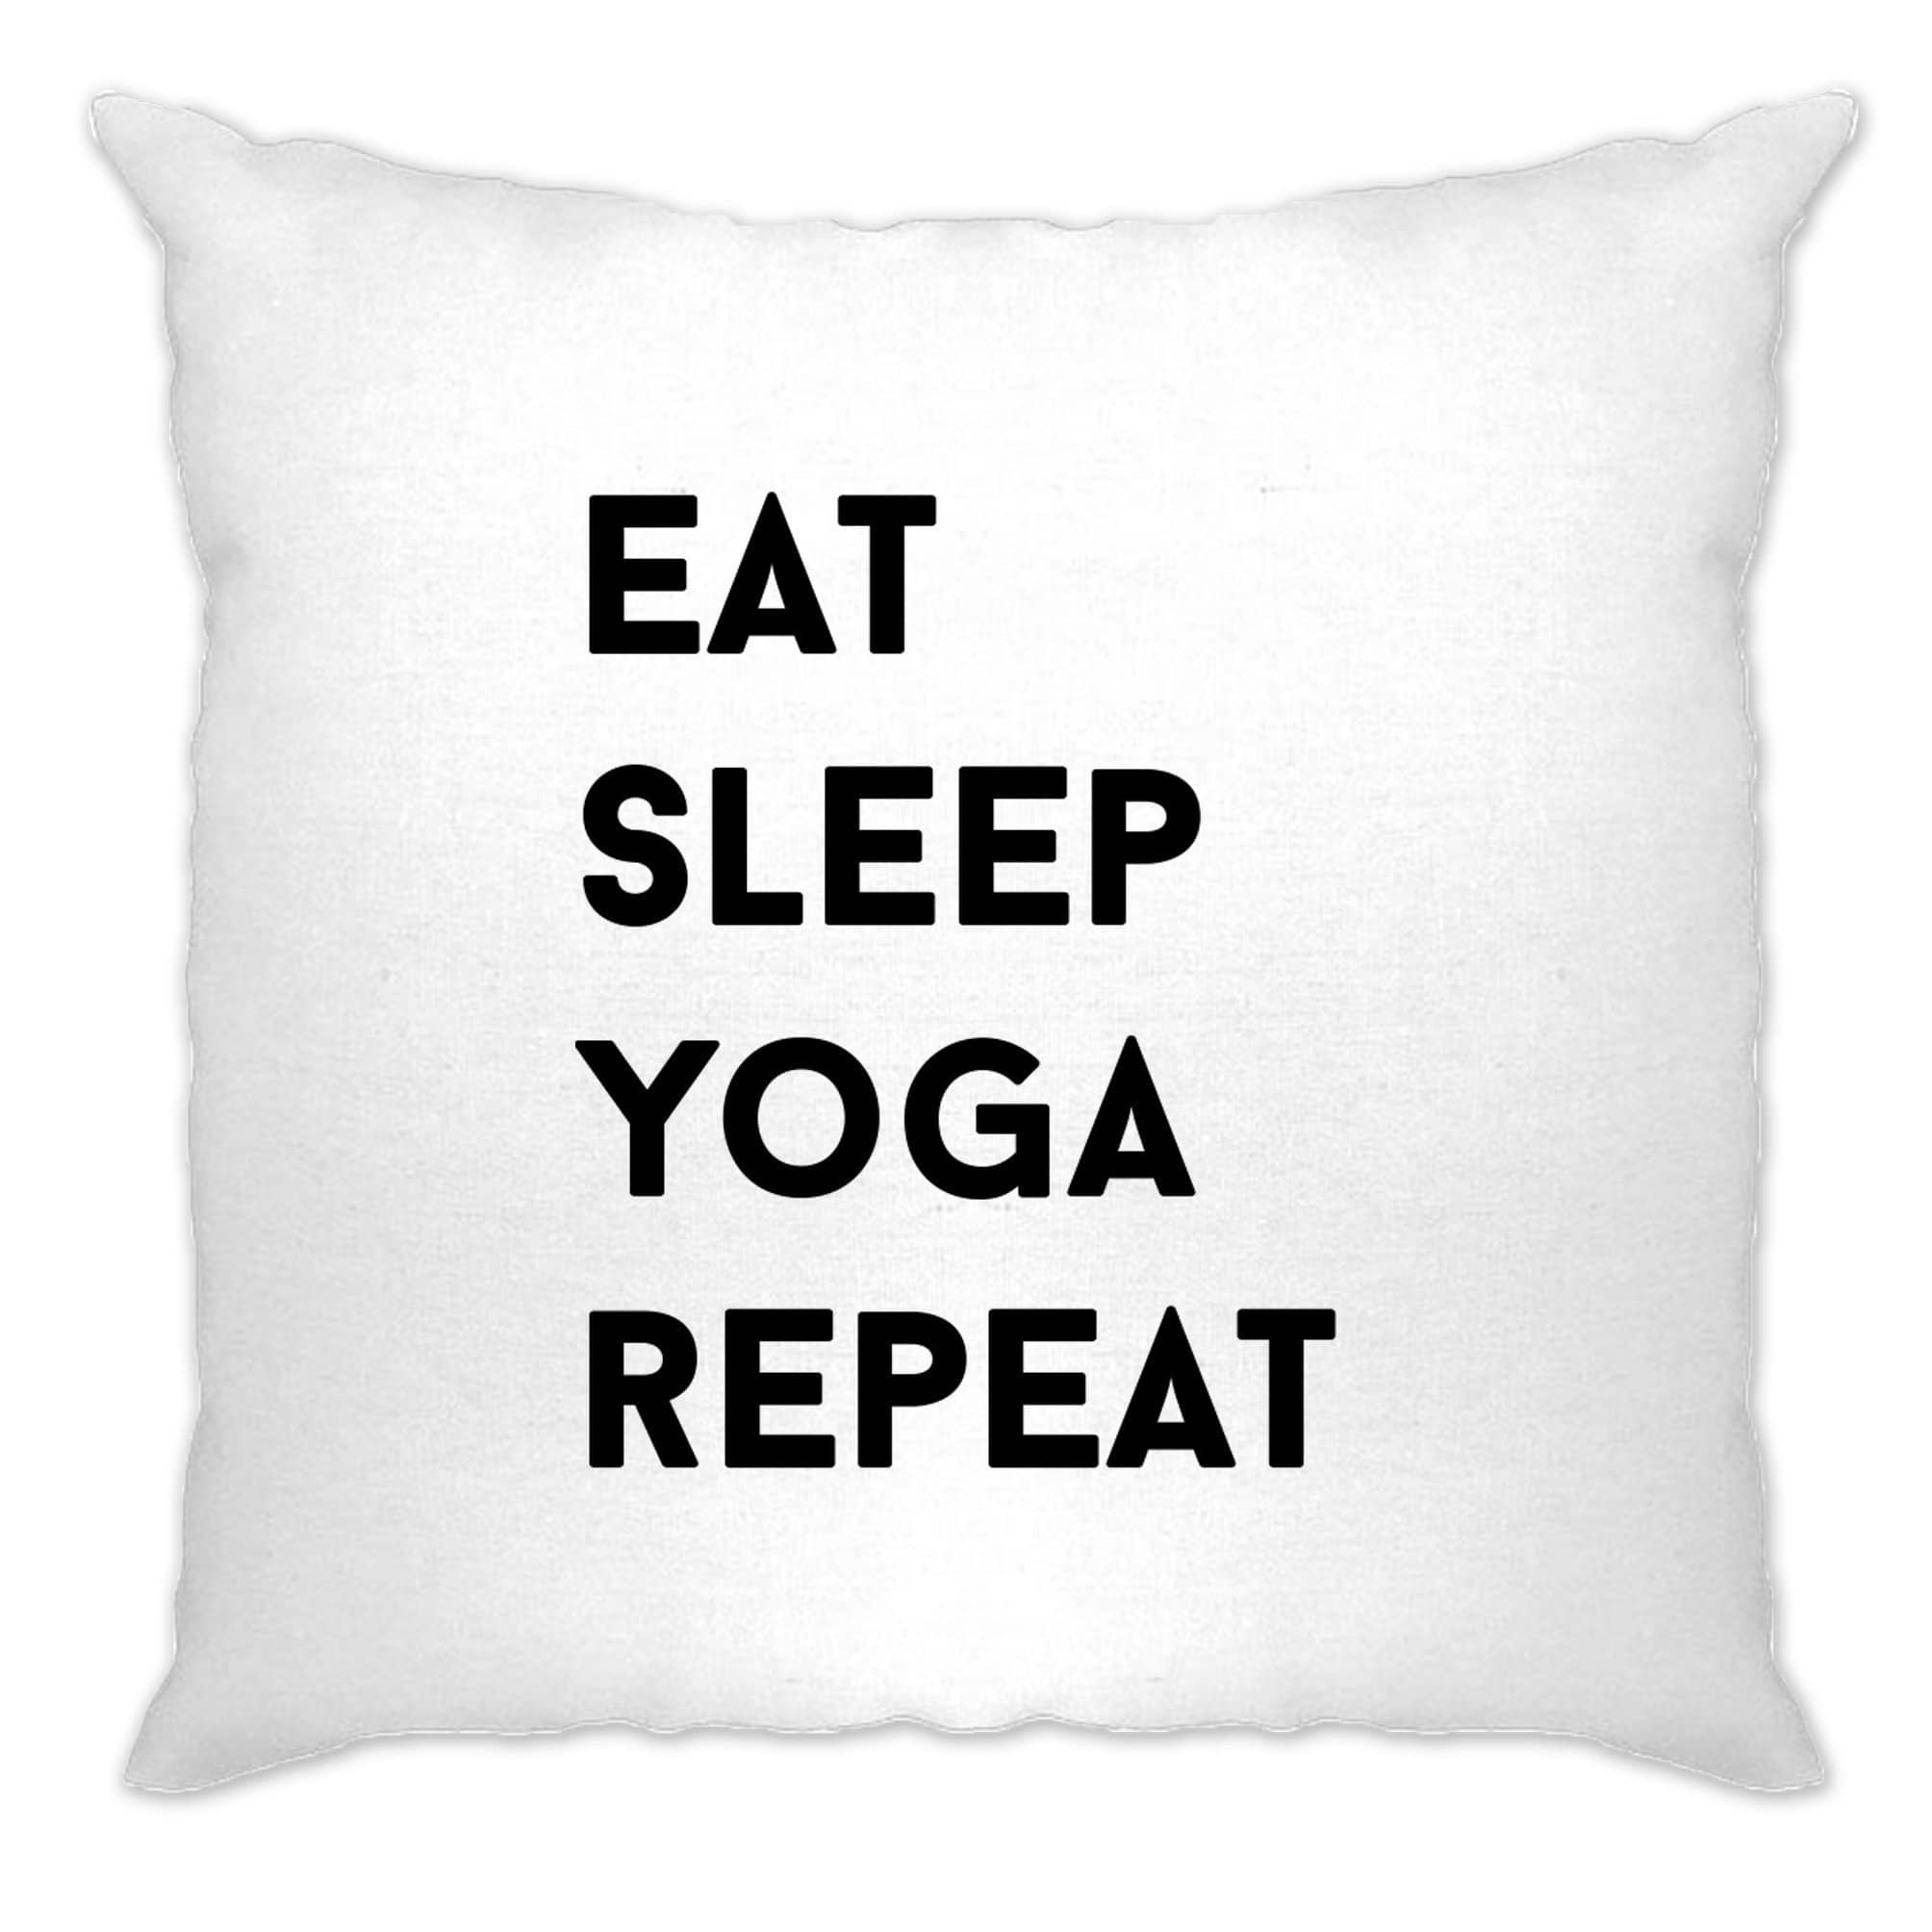 Gym Cushion Cover Eat, Sleep, Yoga, Repeat Slogan